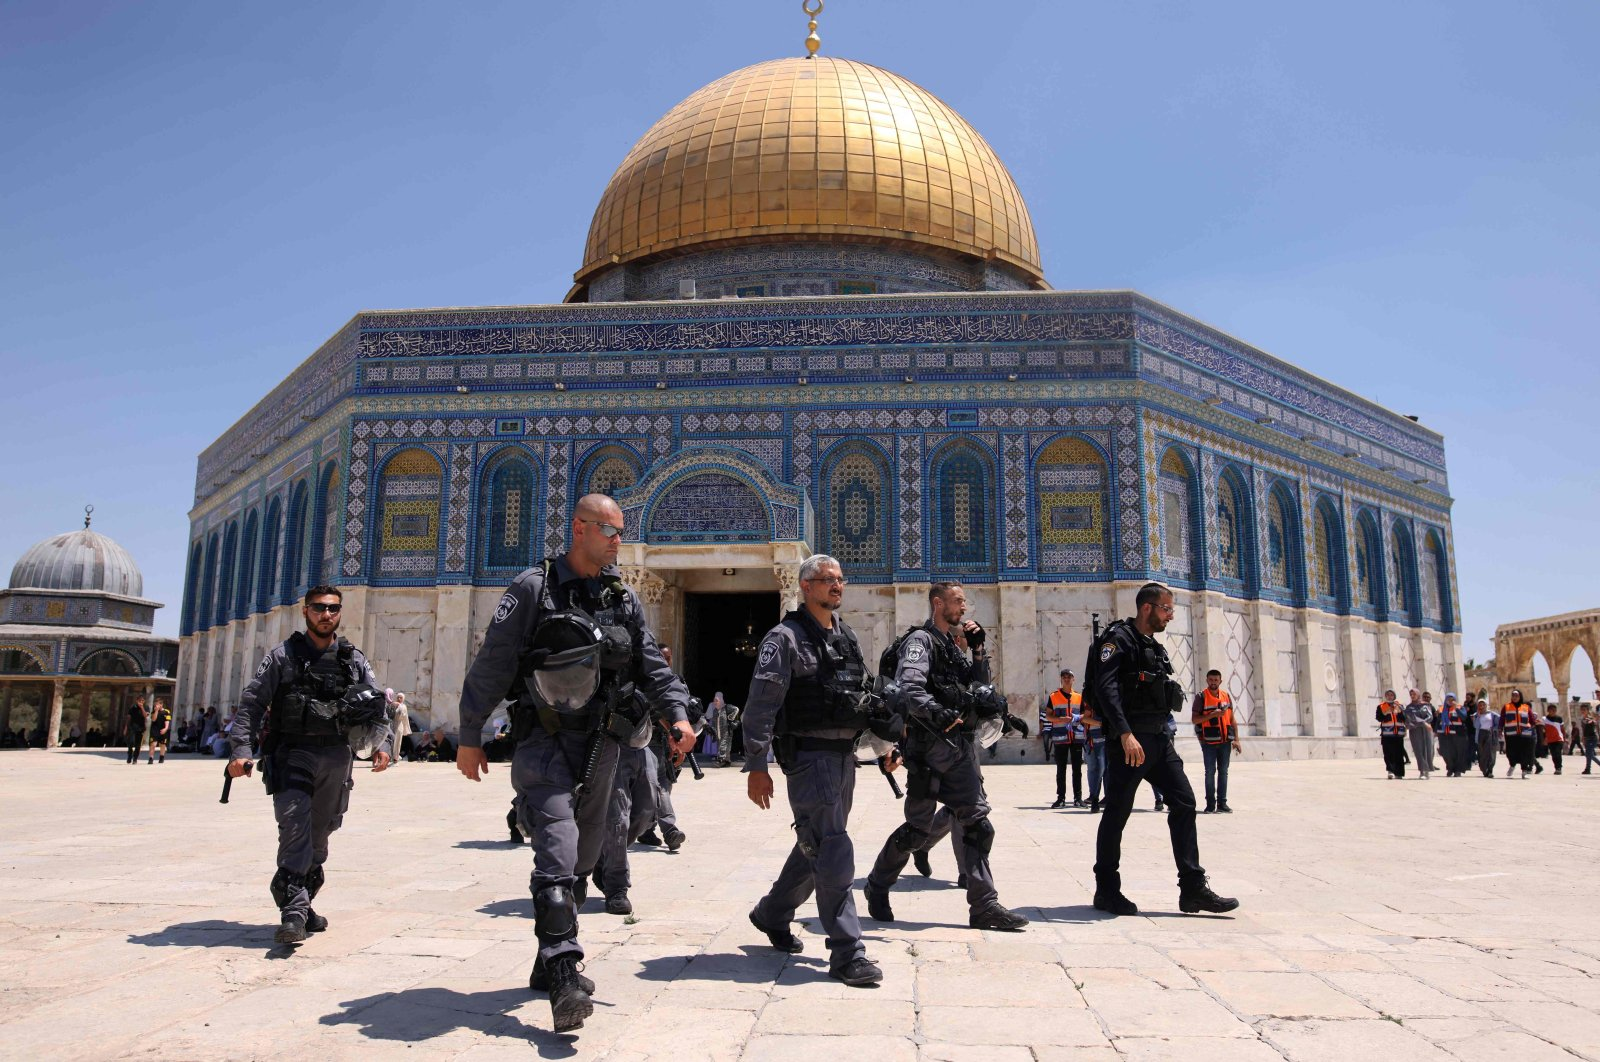 Israeli security forces patrol the Al Aqsa mosque compound in Jerusalem, occupied Palestine, June 25, 2021. (AFP Photo)